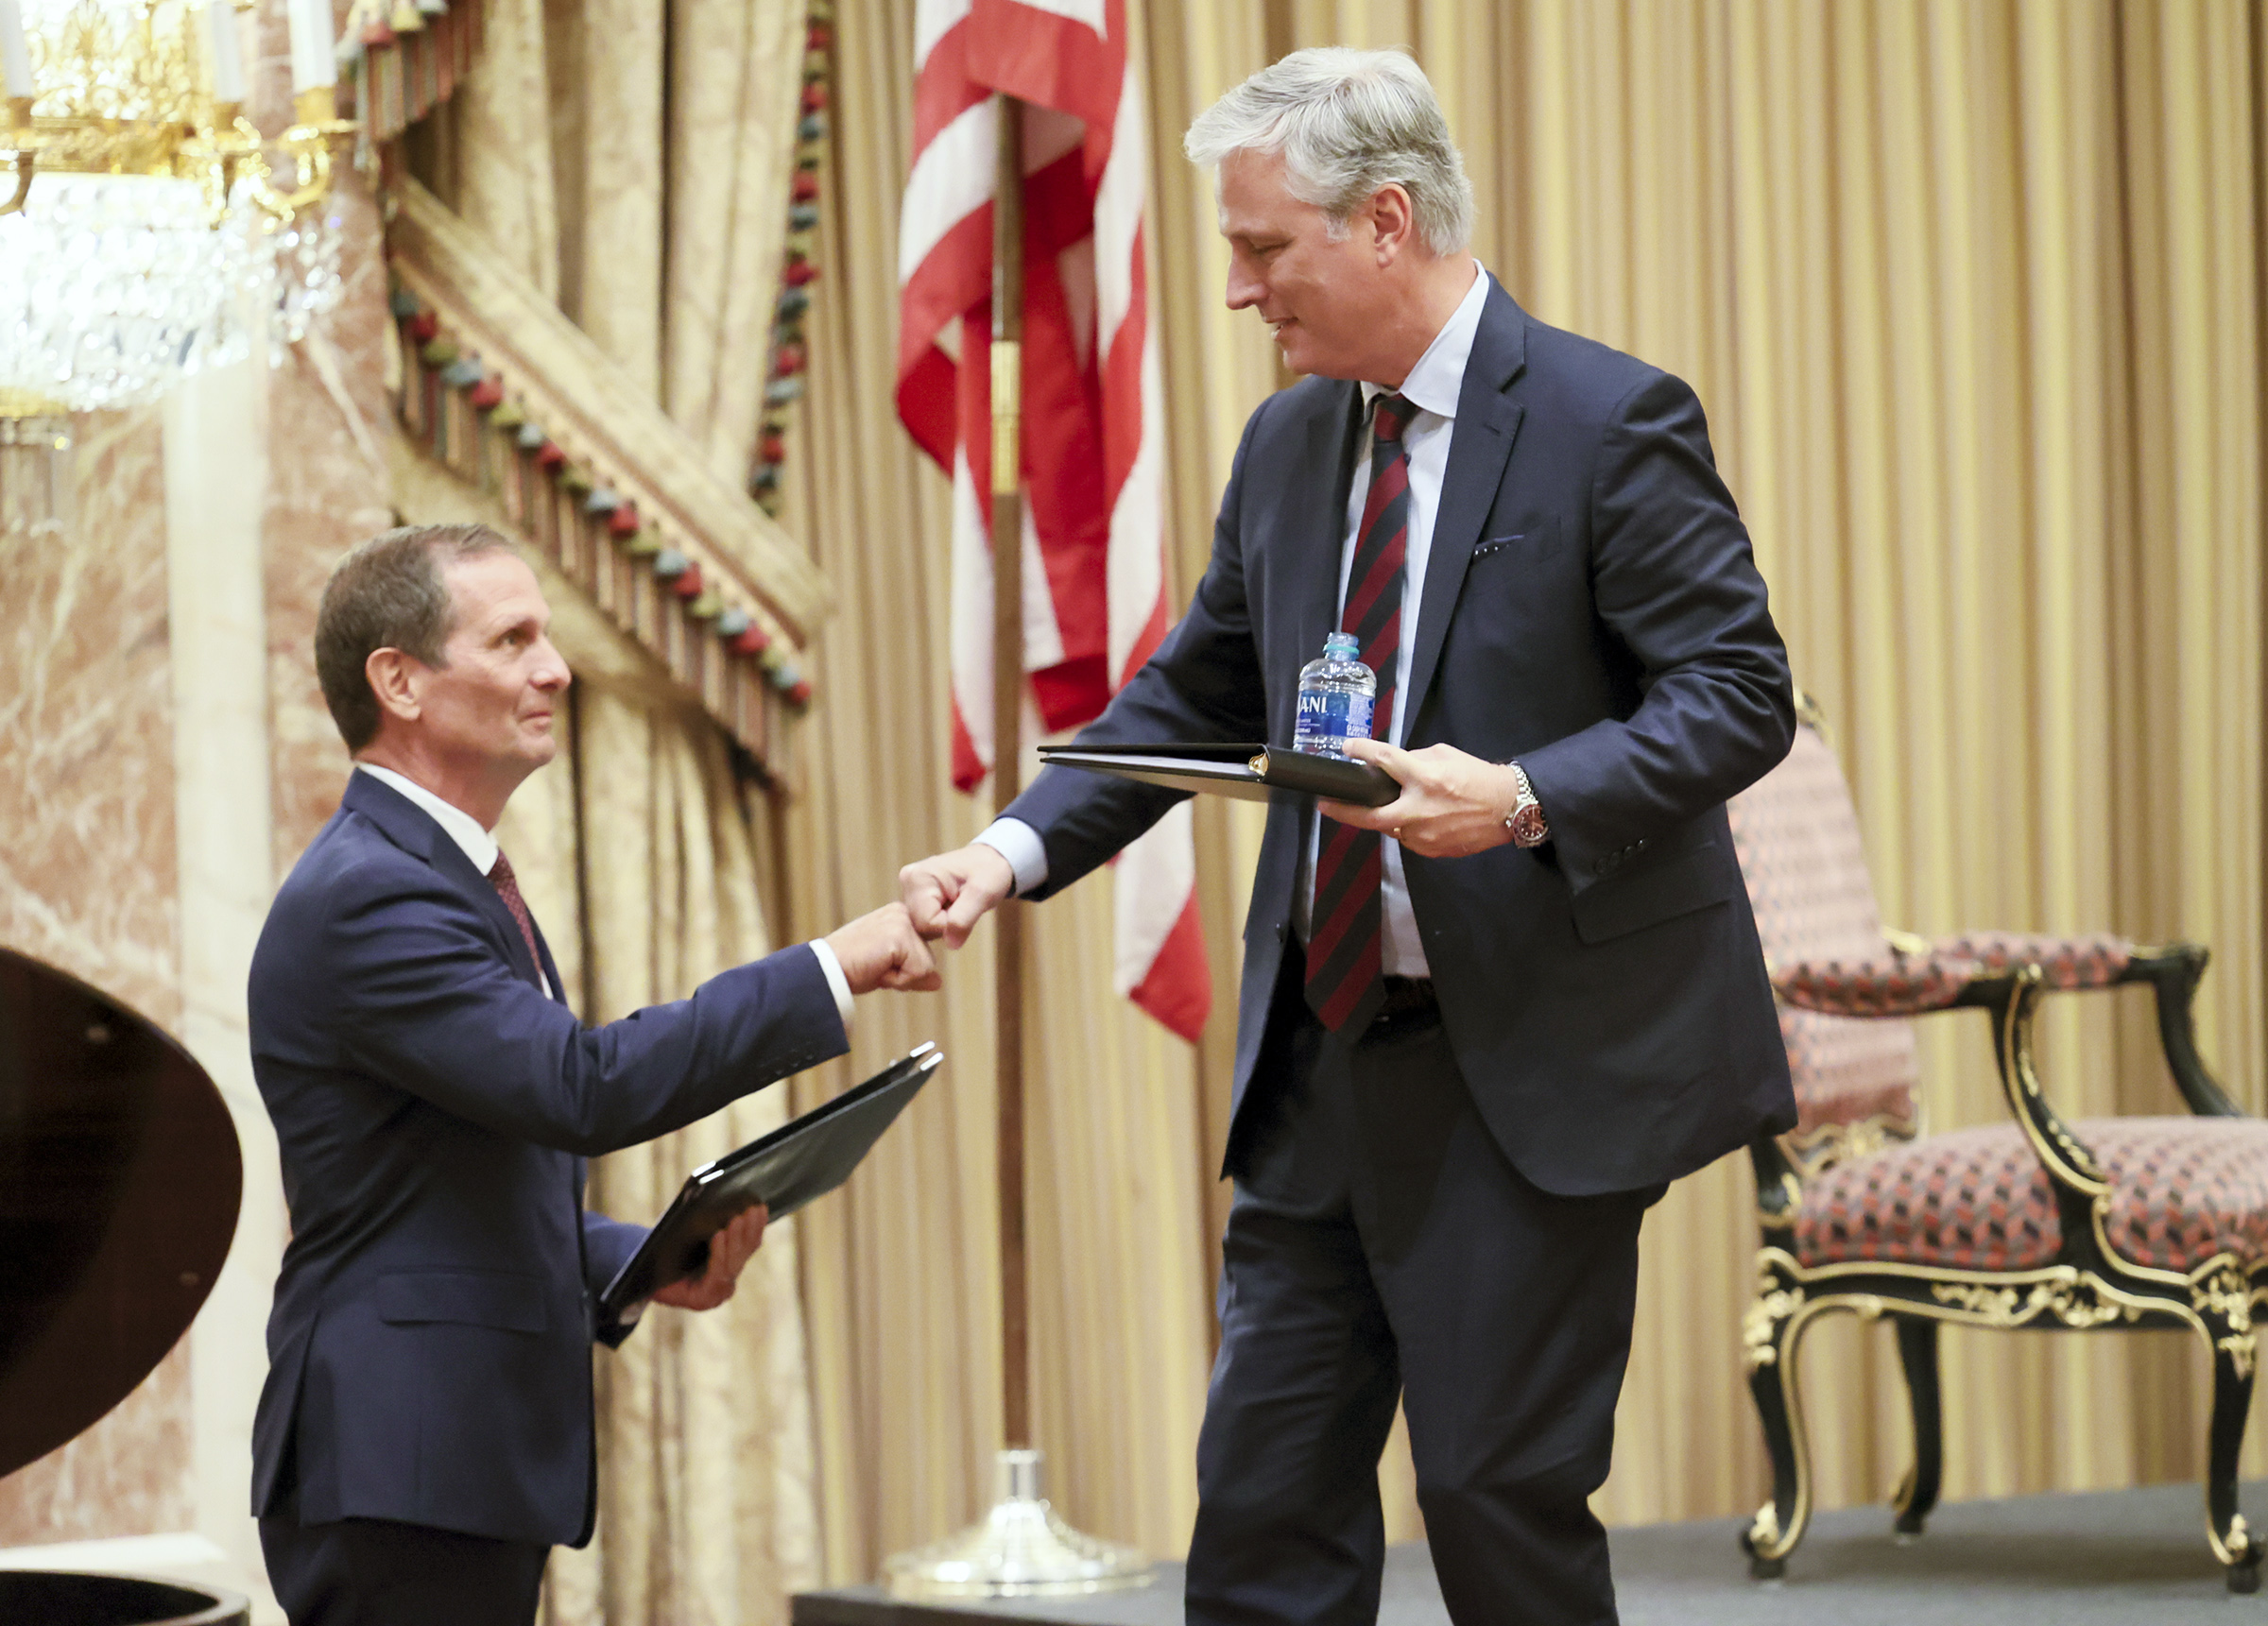 Rep. Chris Stewart, R-Utah, left, shakes hands with U.S. national security adviser Robert O'Brien after O'Brien gave the keynote address at the 6th annual Stewart Security Summit at the Grand America Hotel in Salt Lake City on Tuesday, Oct. 6, 2020.